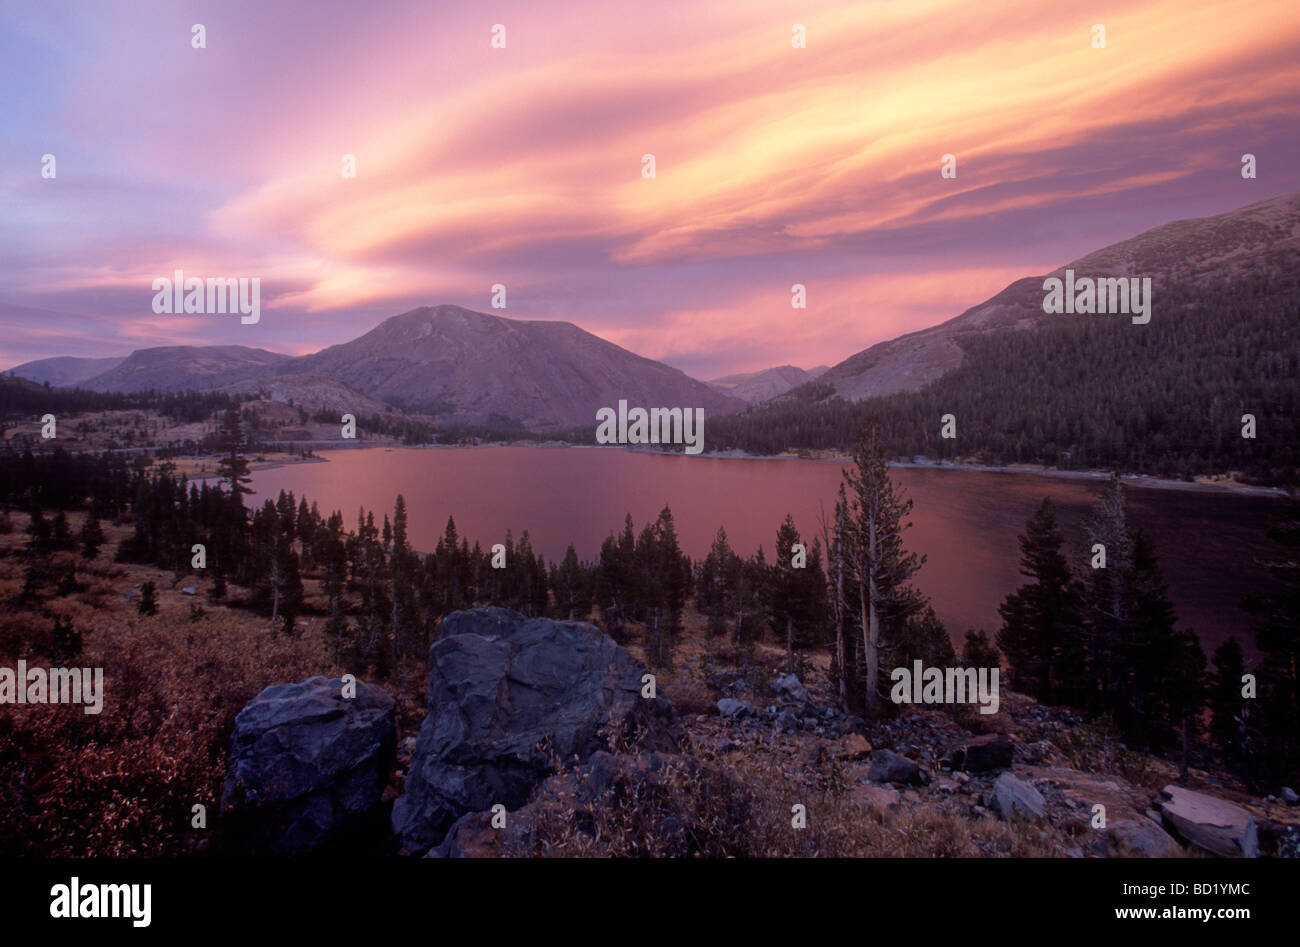 Nuages lenticulaires et montagnes, Tioga Pass, en Californie. Photo Stock